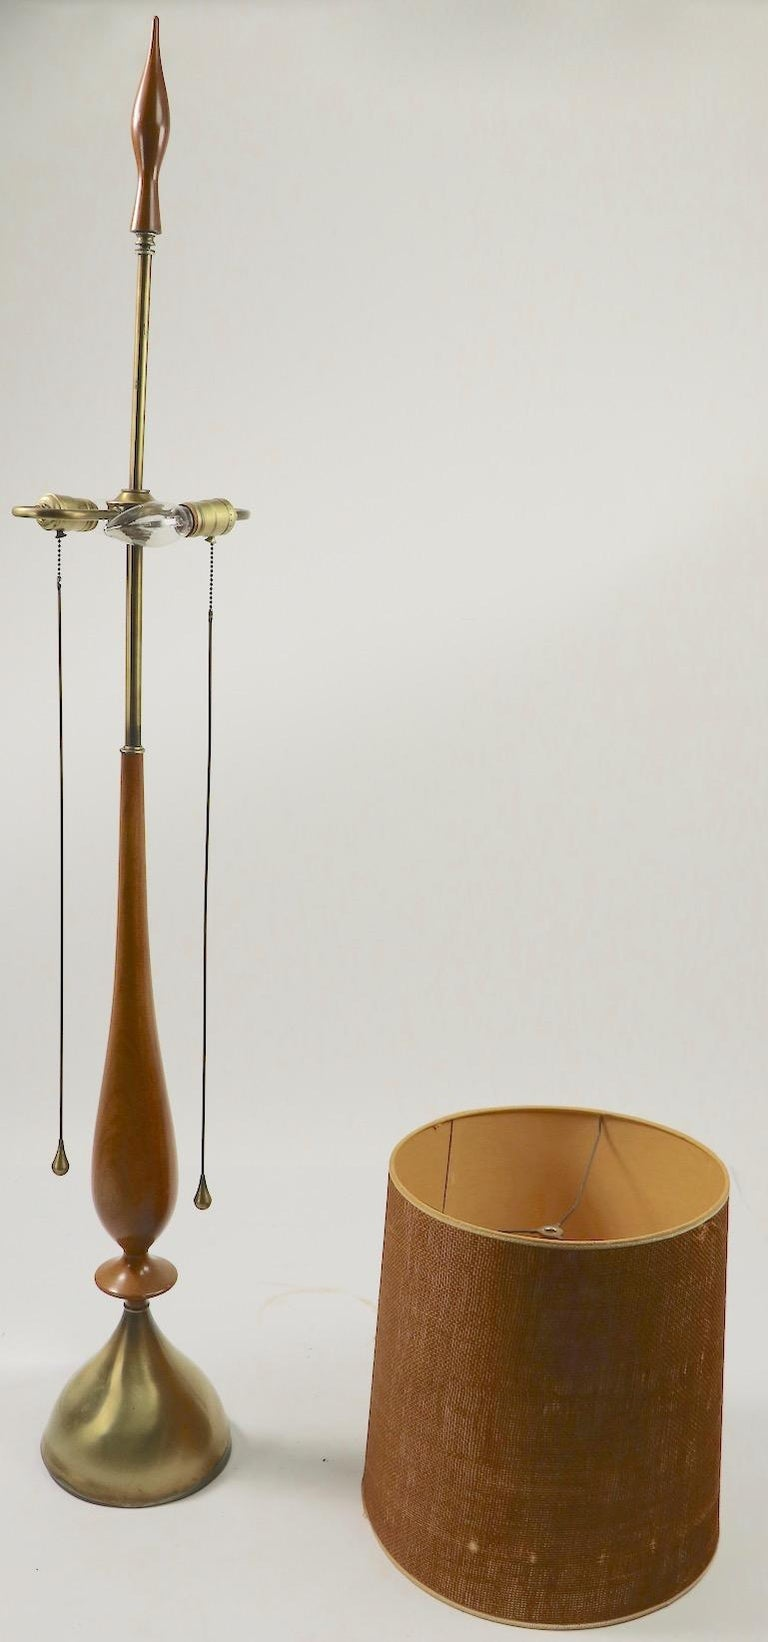 Exceptional elongated mid century table lamp designed by Tony Paul for Westwood Industries. This example is in very good, original and working condition, shade included but shows minor damage. Measures: Diameter of base 8 x diameter of Shade 13.5 x